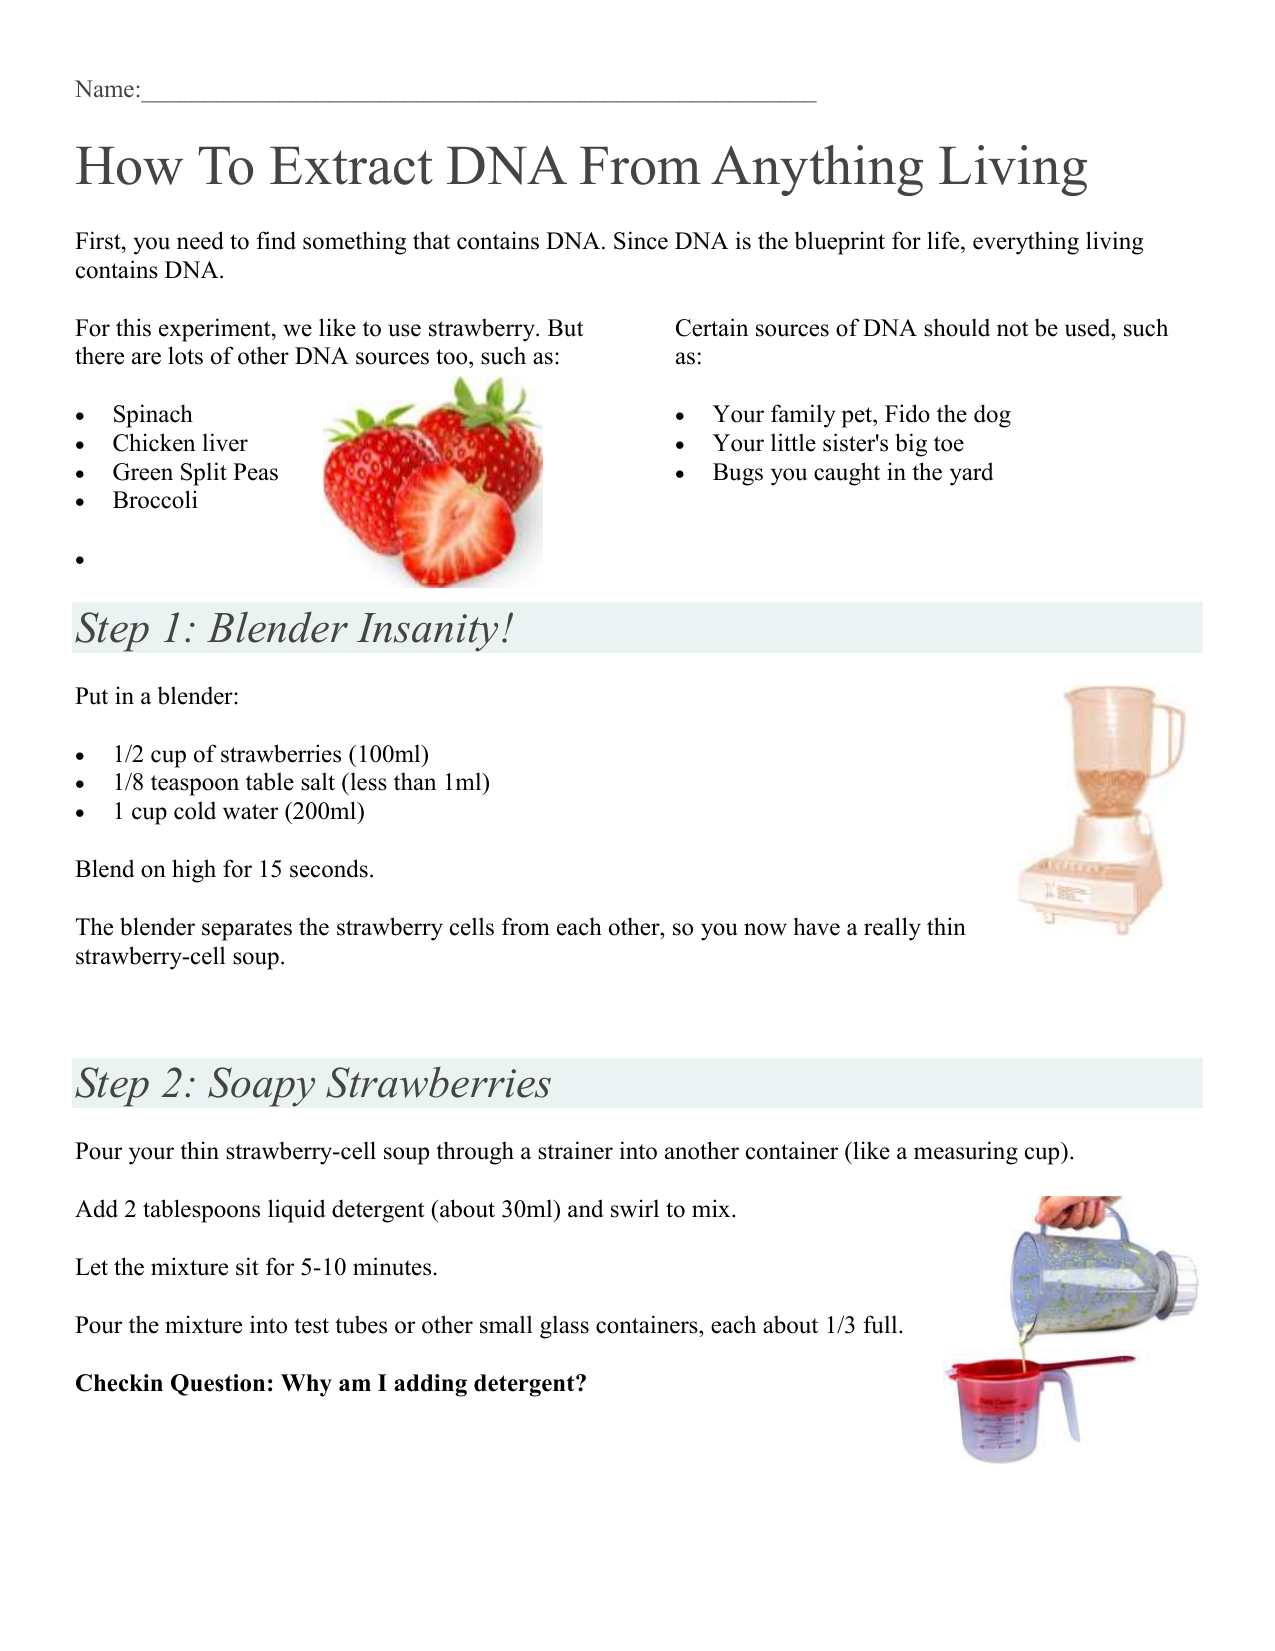 Strawberry Dna Extraction Lab - slidedocnow